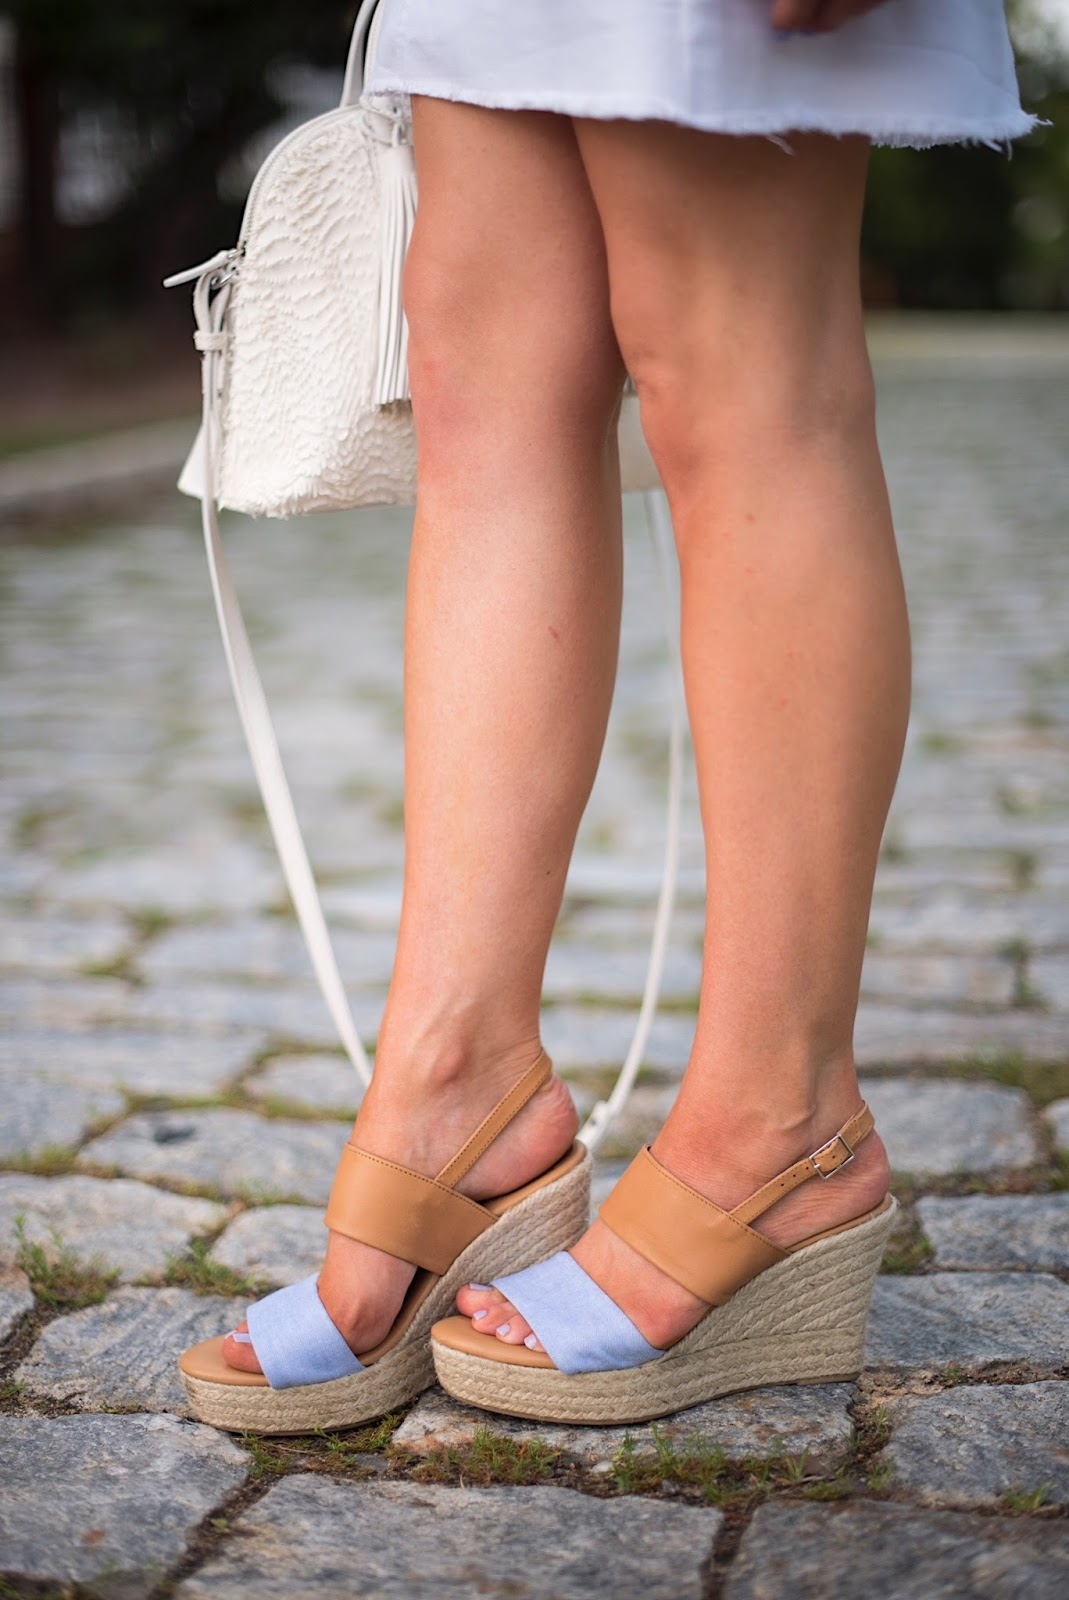 Chambray Wedges - Click through to see more on Something Delightful Blog